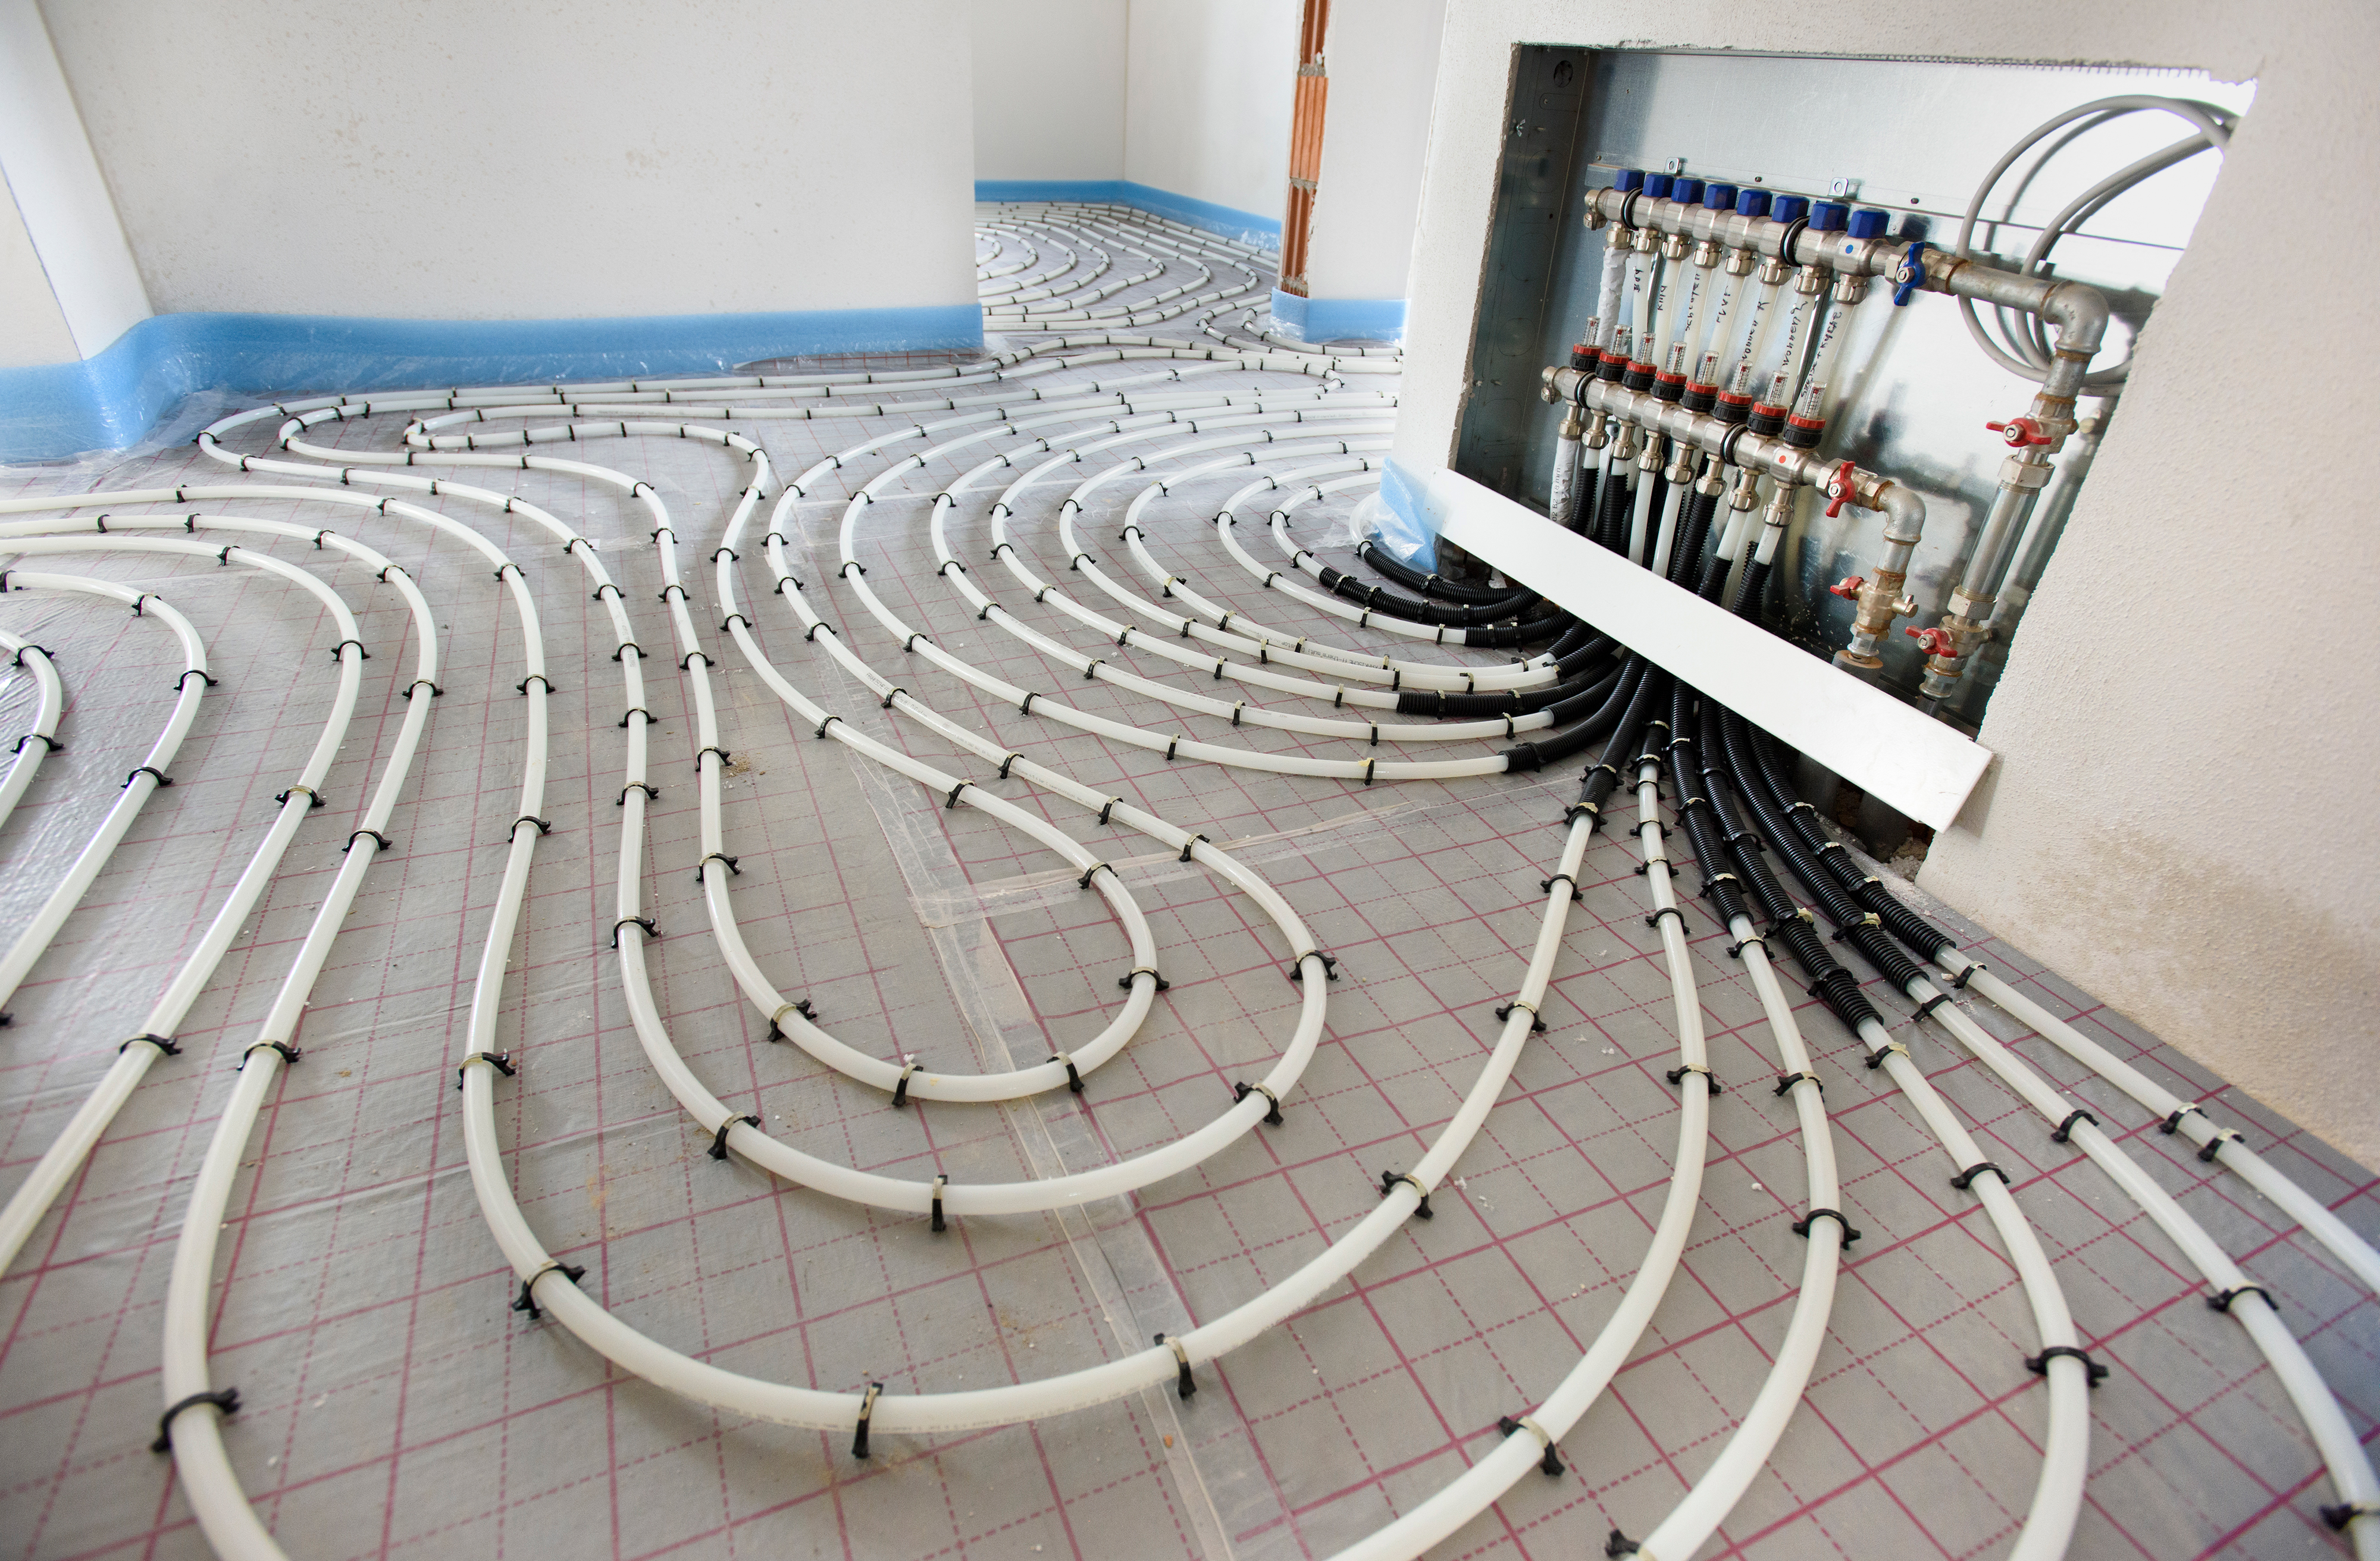 Pipes of under floor heating in construction of new residential house.